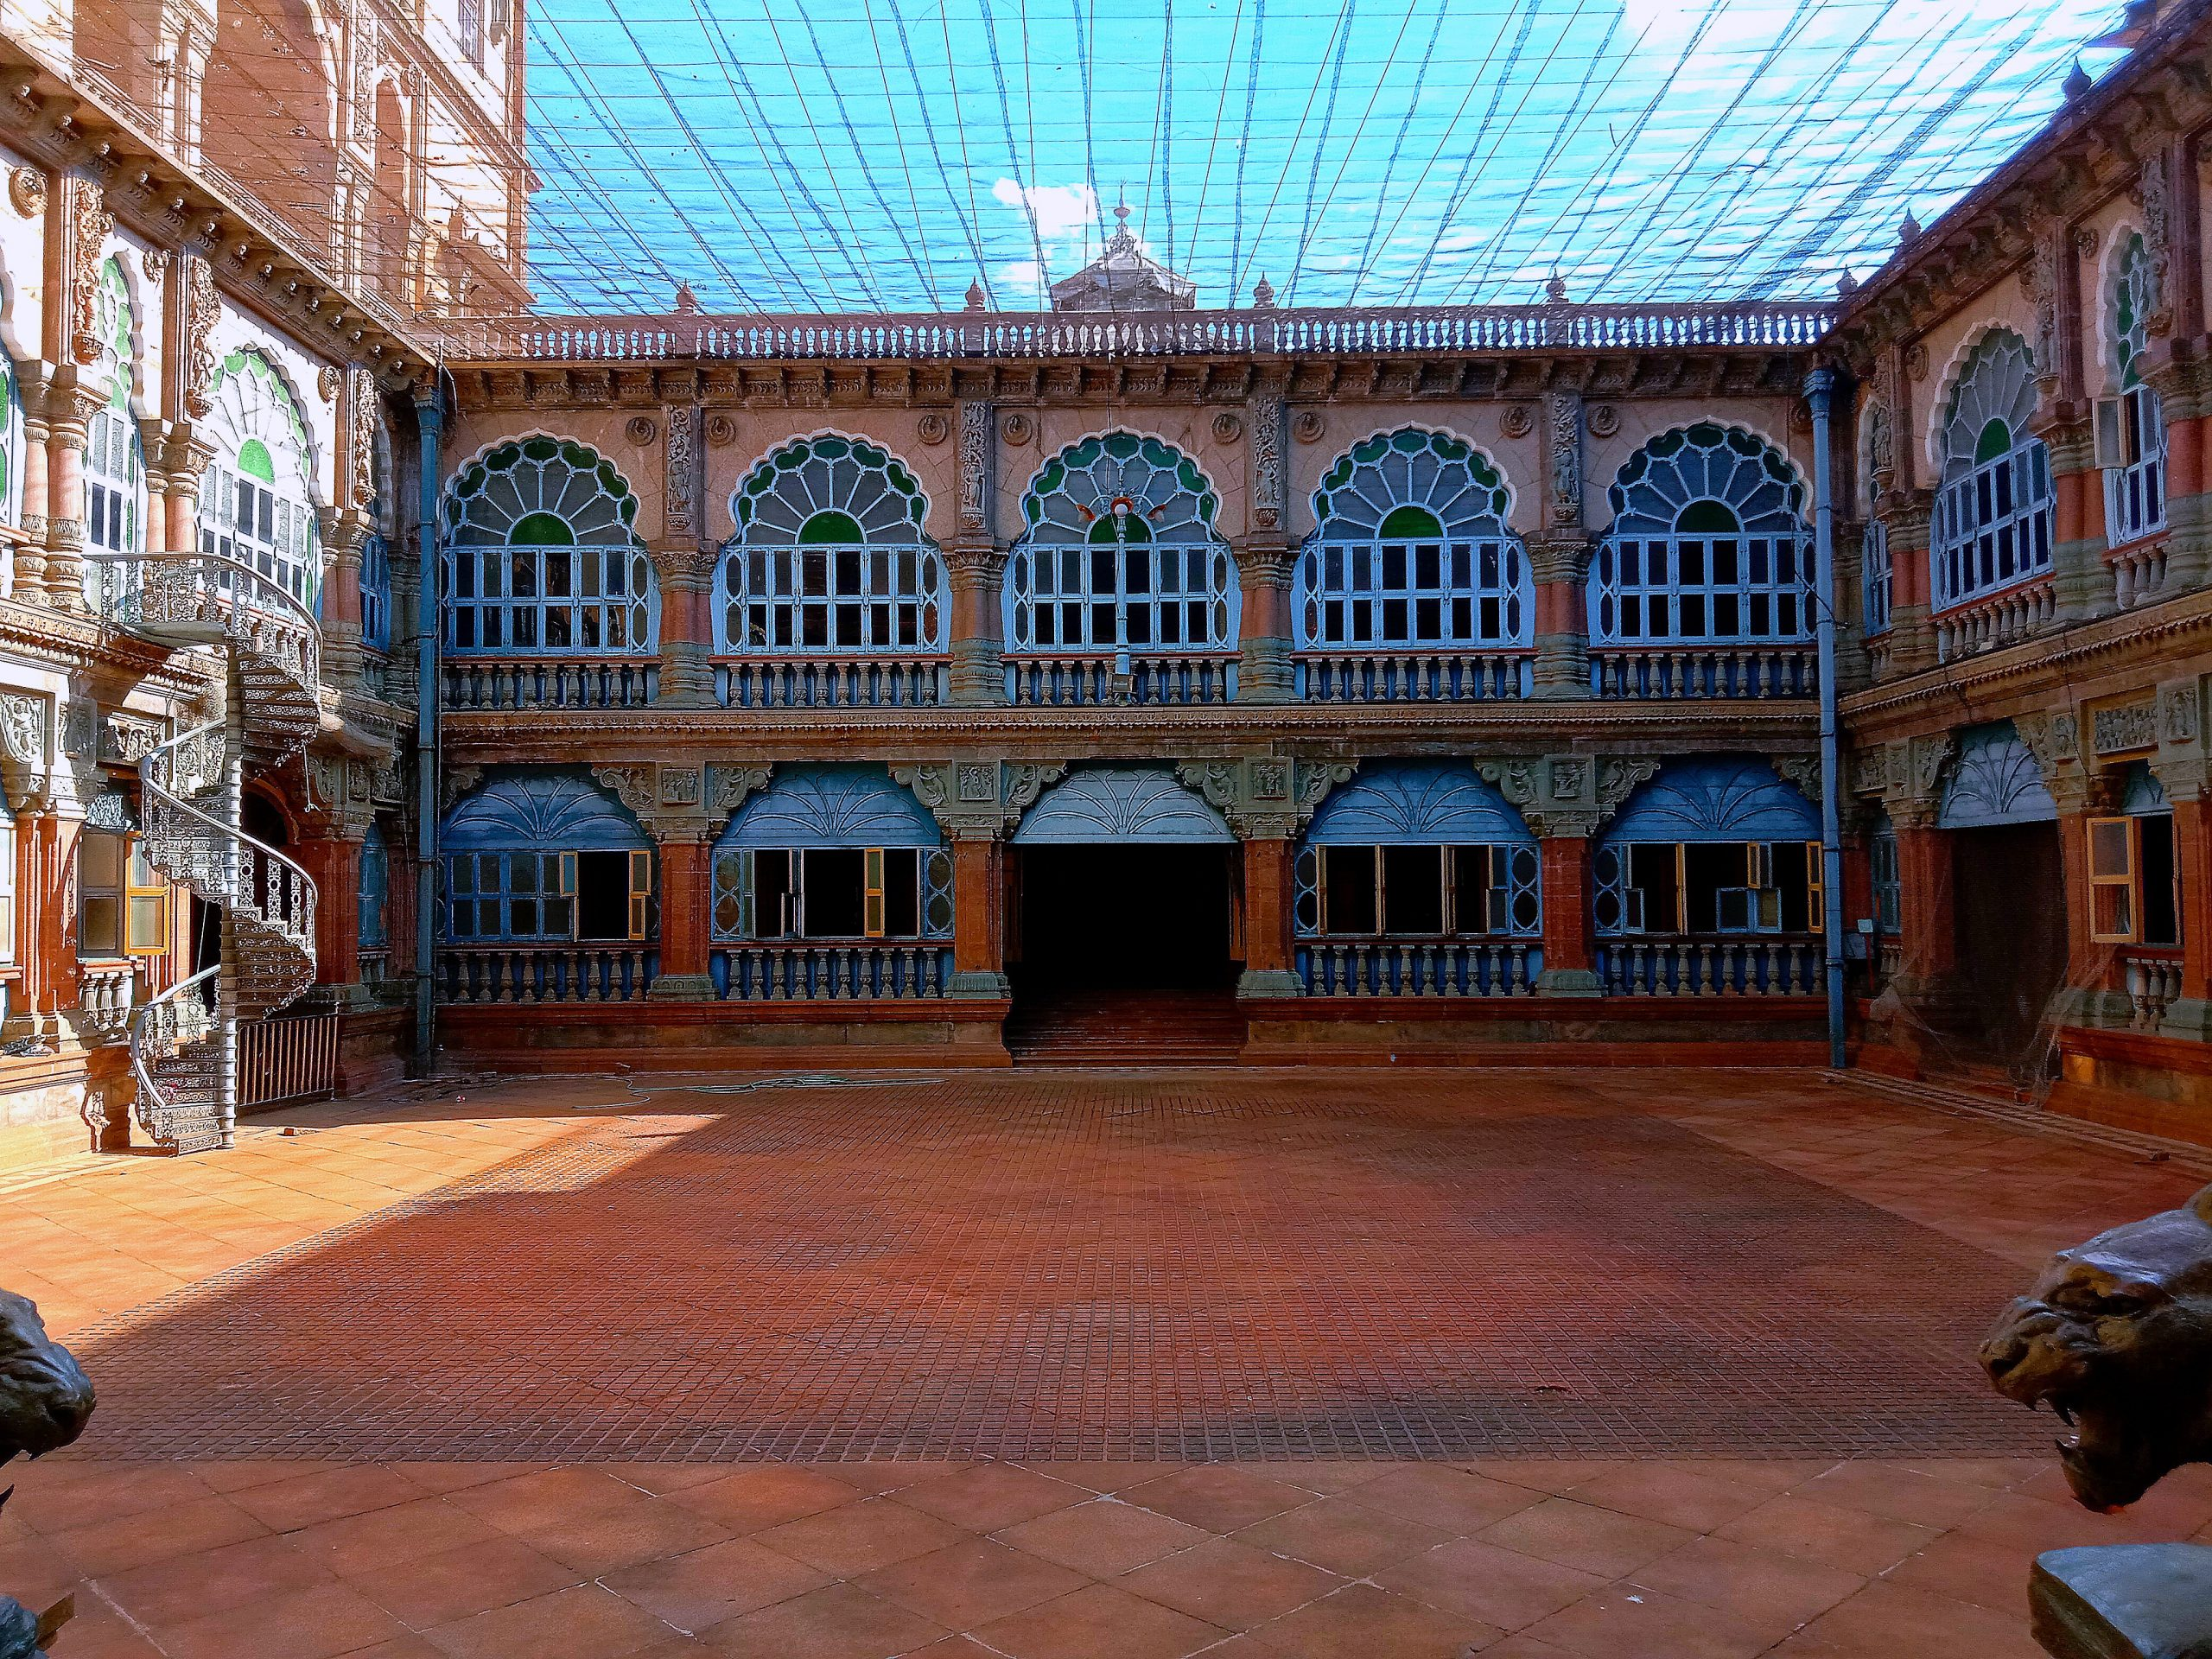 Courtyard of a palace